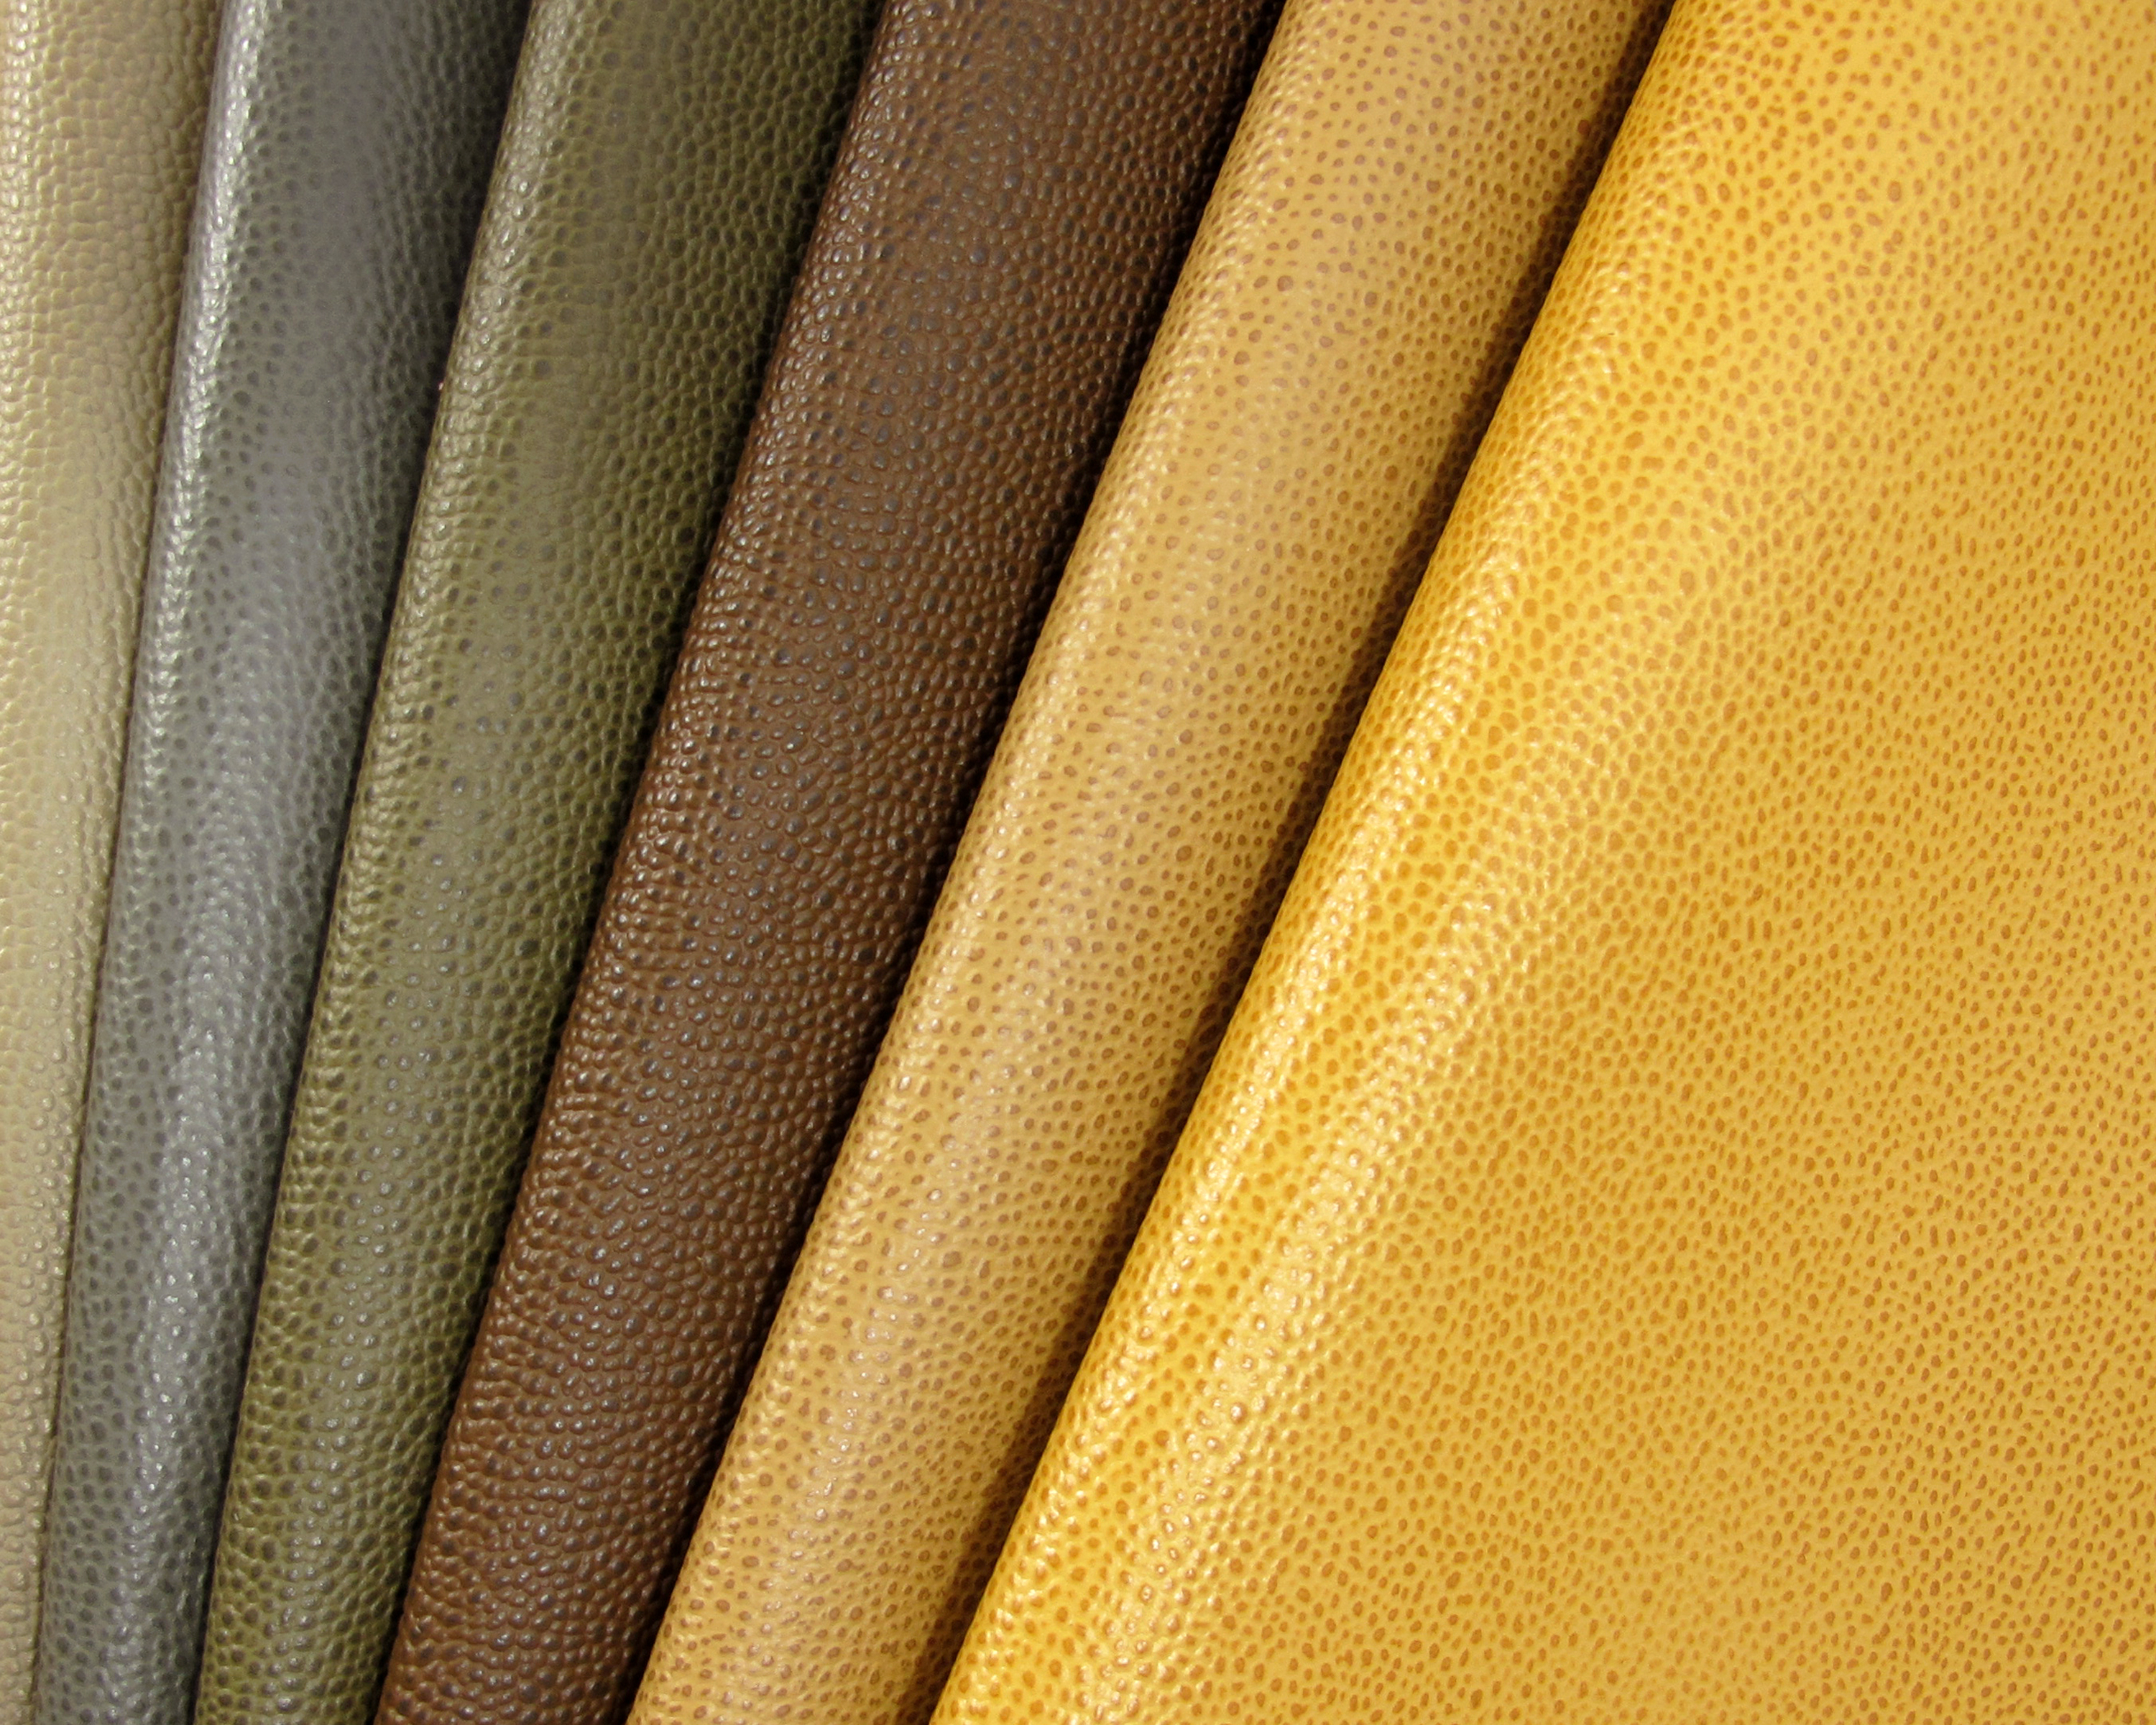 on leather Leather is a durable and flexible material created by tanning animal rawhides, mostly cattle hide it can be produced at manufacturing scales ranging from cottage.